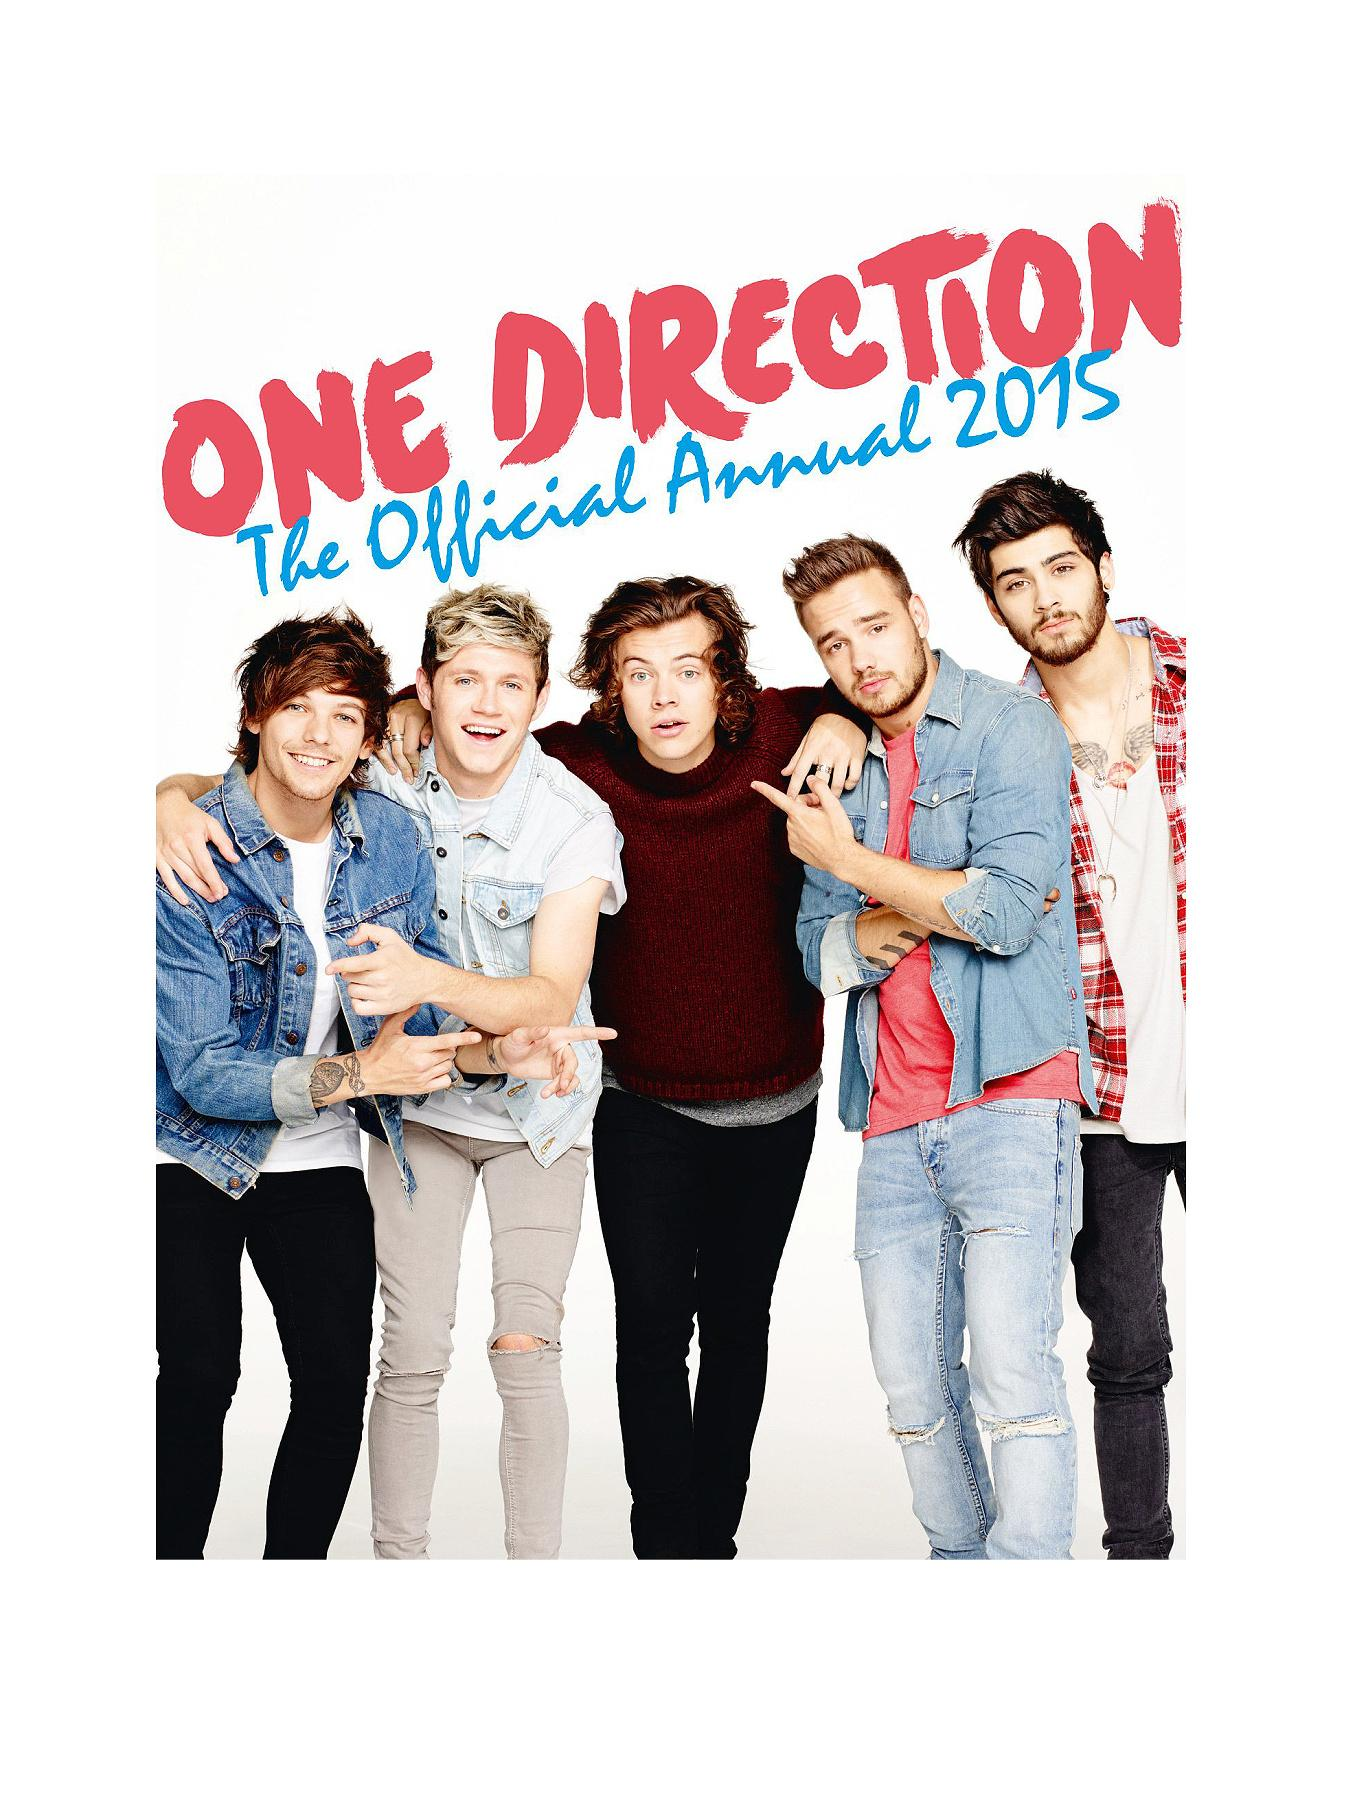 One Direction: Official Annual 2015 - Hardback